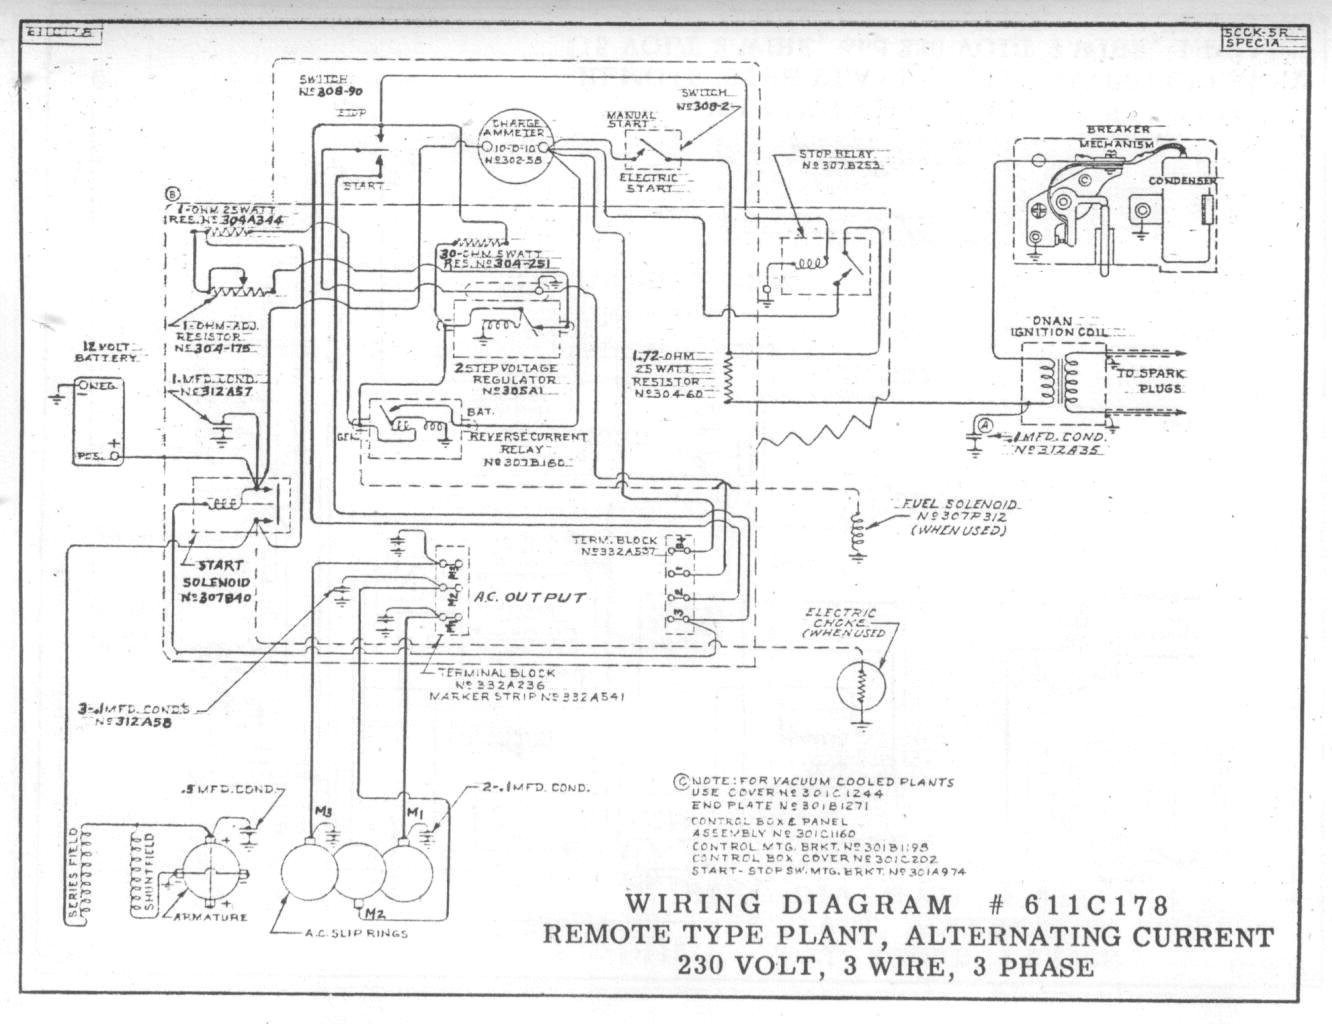 W Wiring Diagram